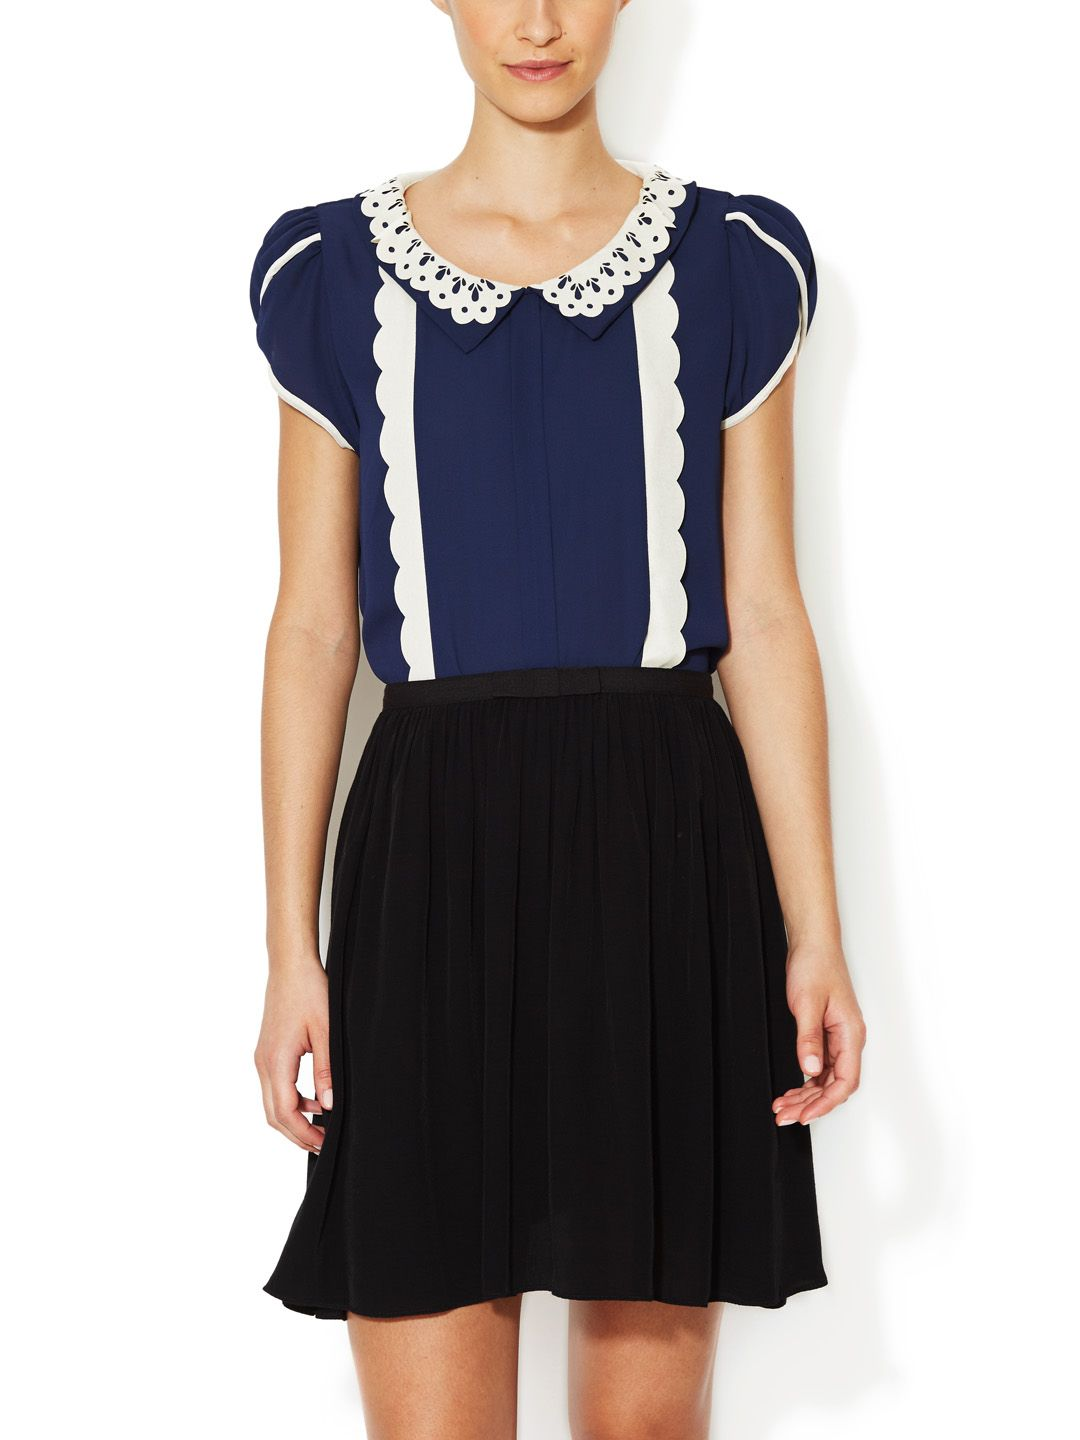 Pan Chiffon Top by The Cue at Gilt